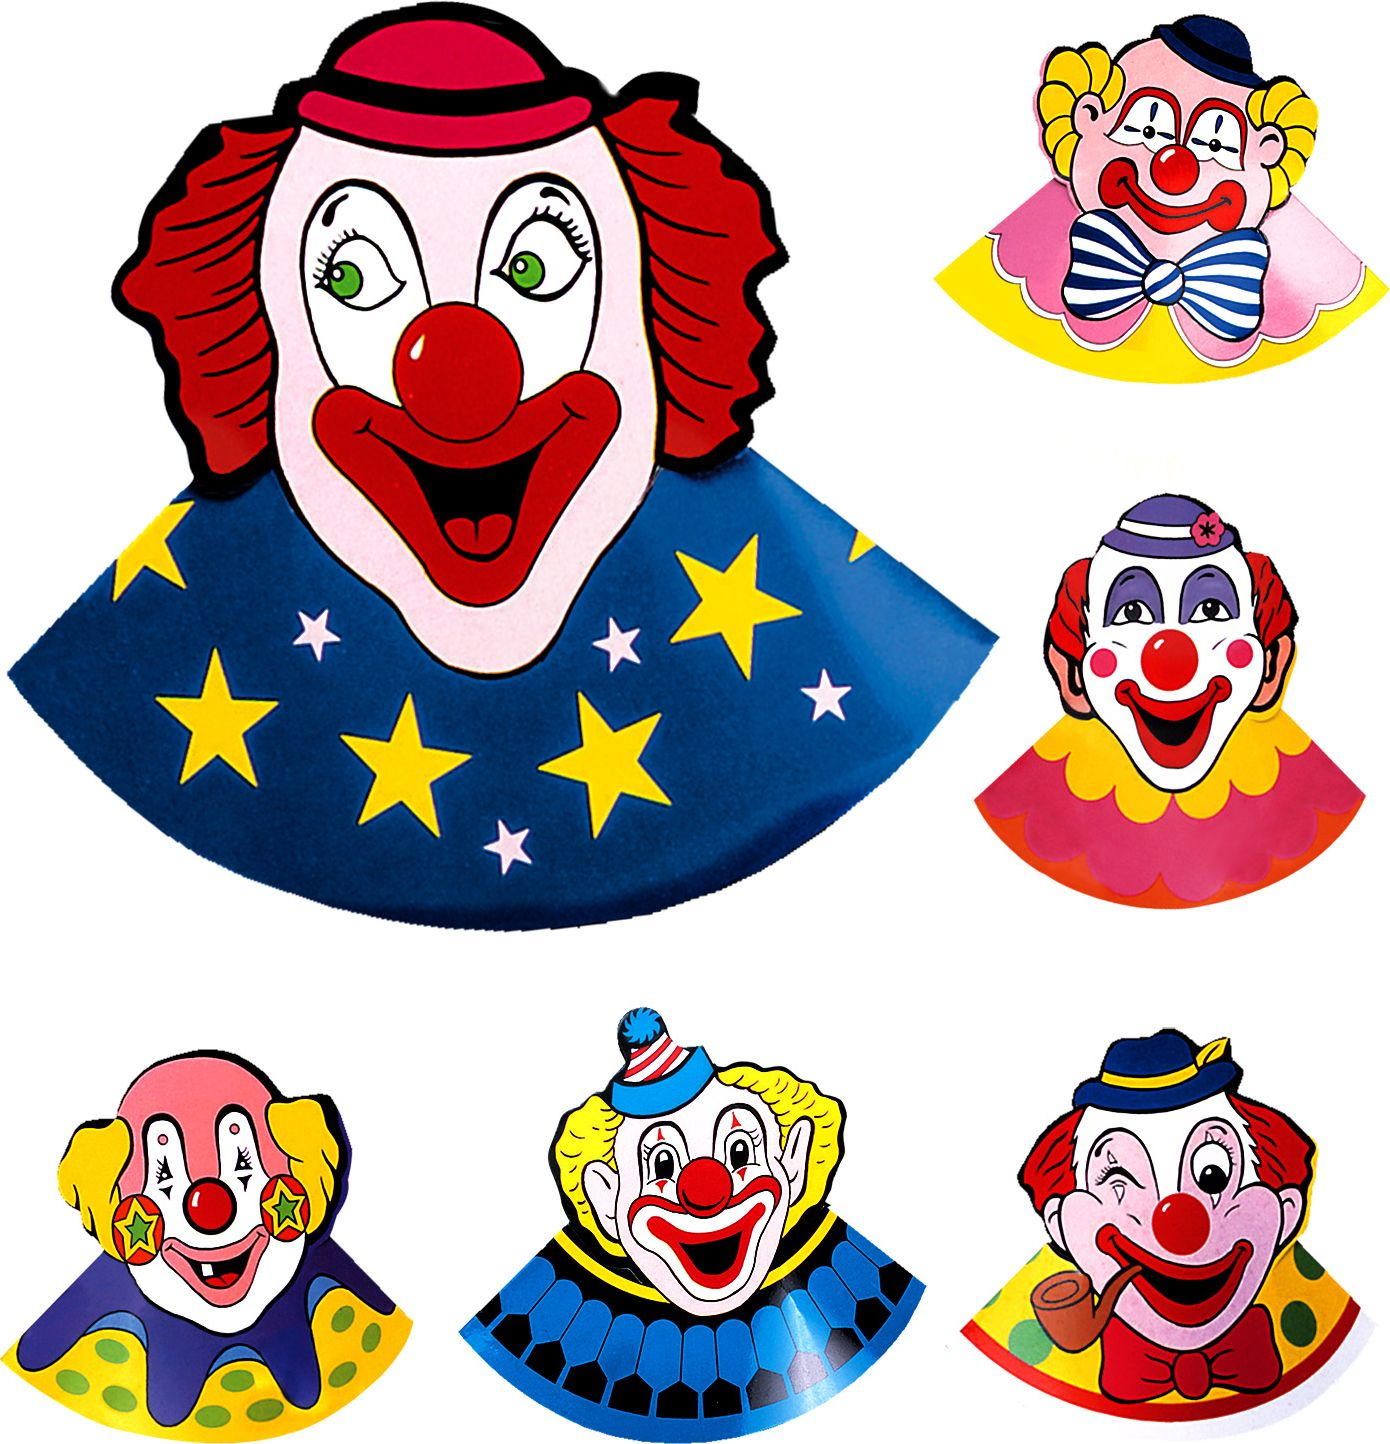 6 clown hoedjes